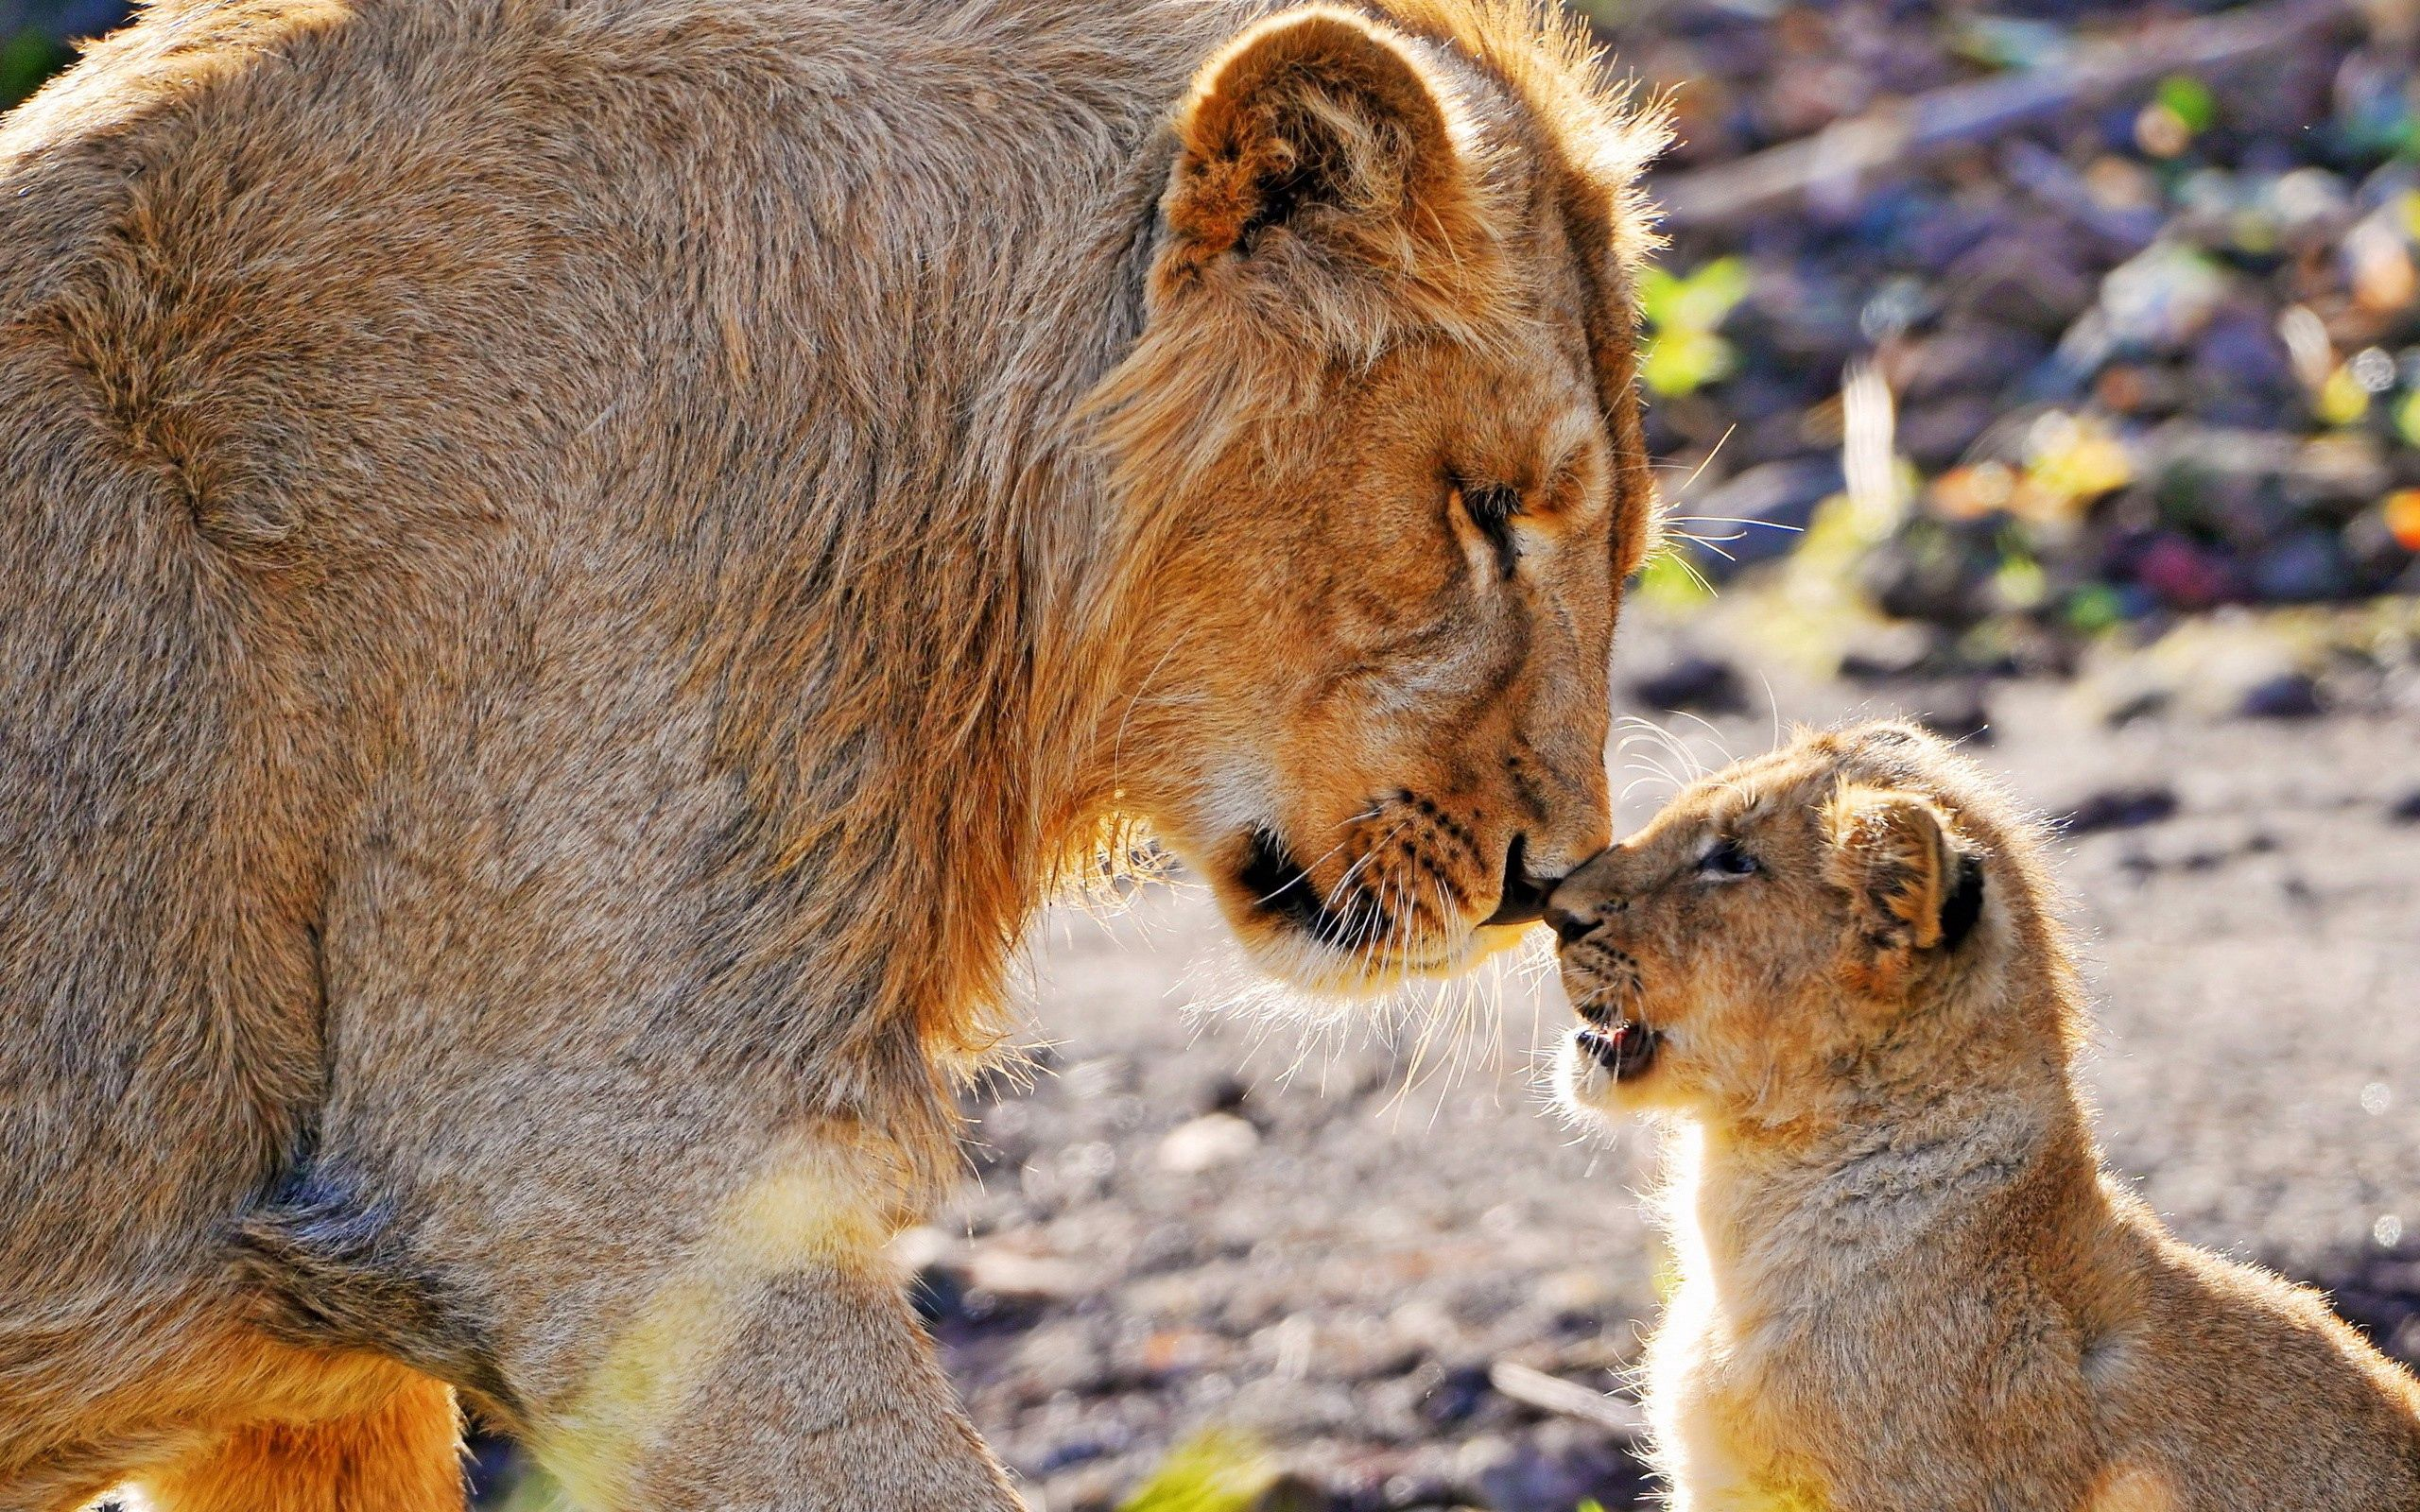 152061 download wallpaper Animals, Couple, Pair, Young, Joey, Lions screensavers and pictures for free